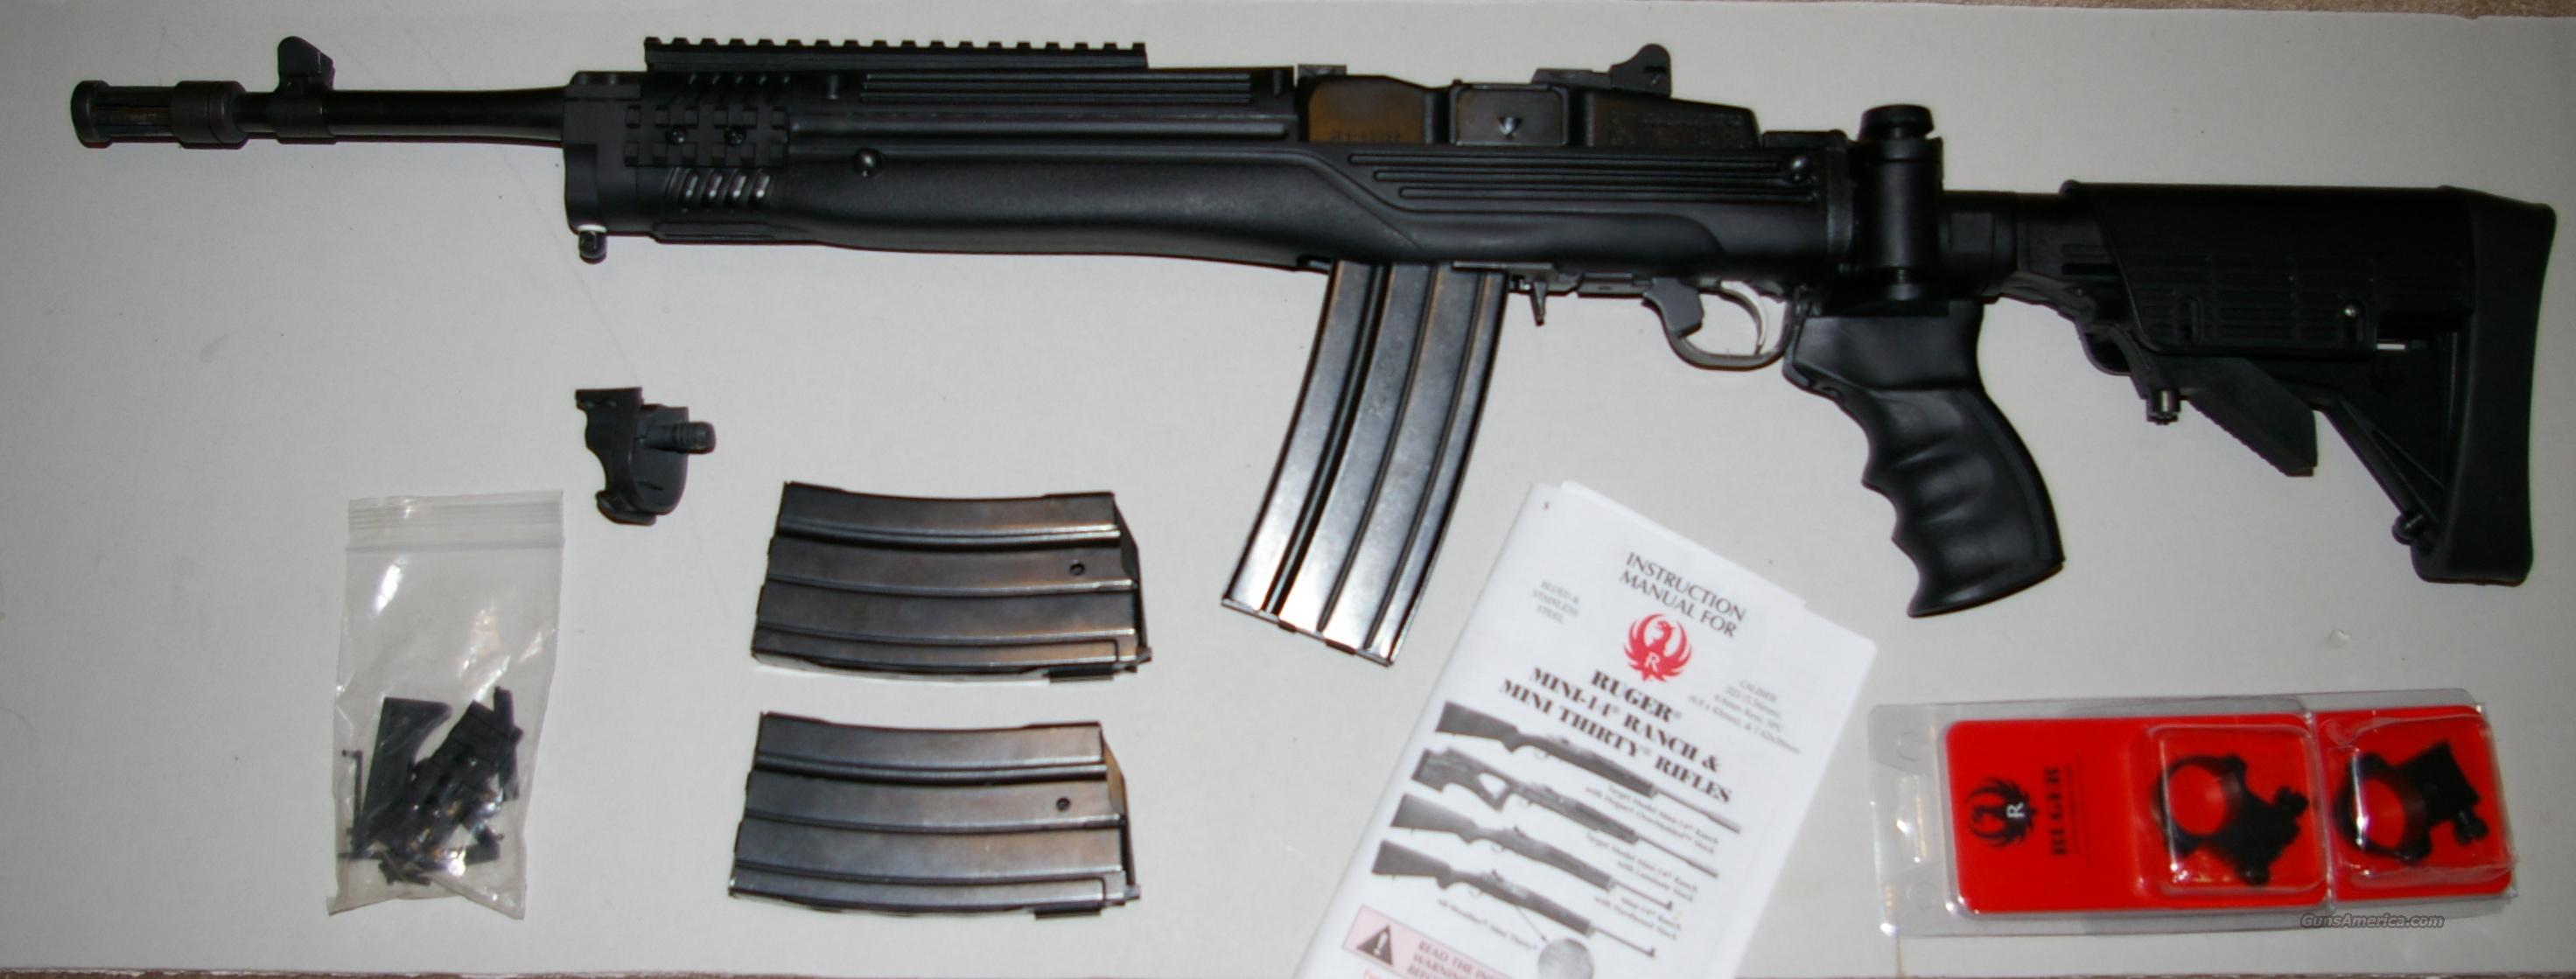 ruger mini 14 tactical 223 for sale rh gunsamerica com Ruger Mini-14 Stock Ruger Mini-14 vs AR-15